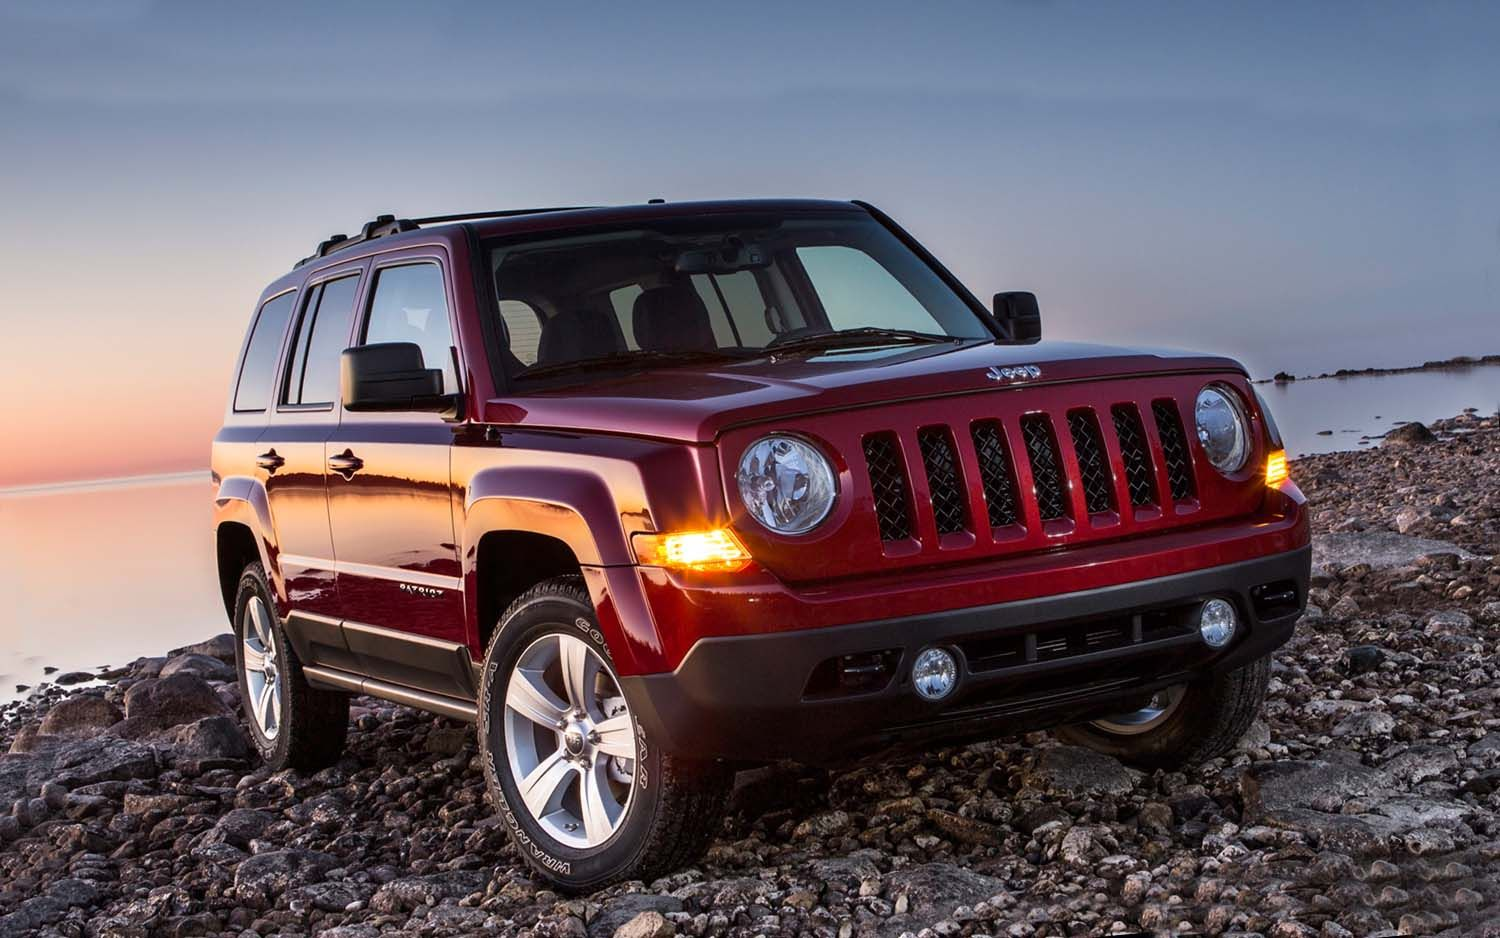 2014 Jeep Patriot Review and Price Jeep patriot, 2014